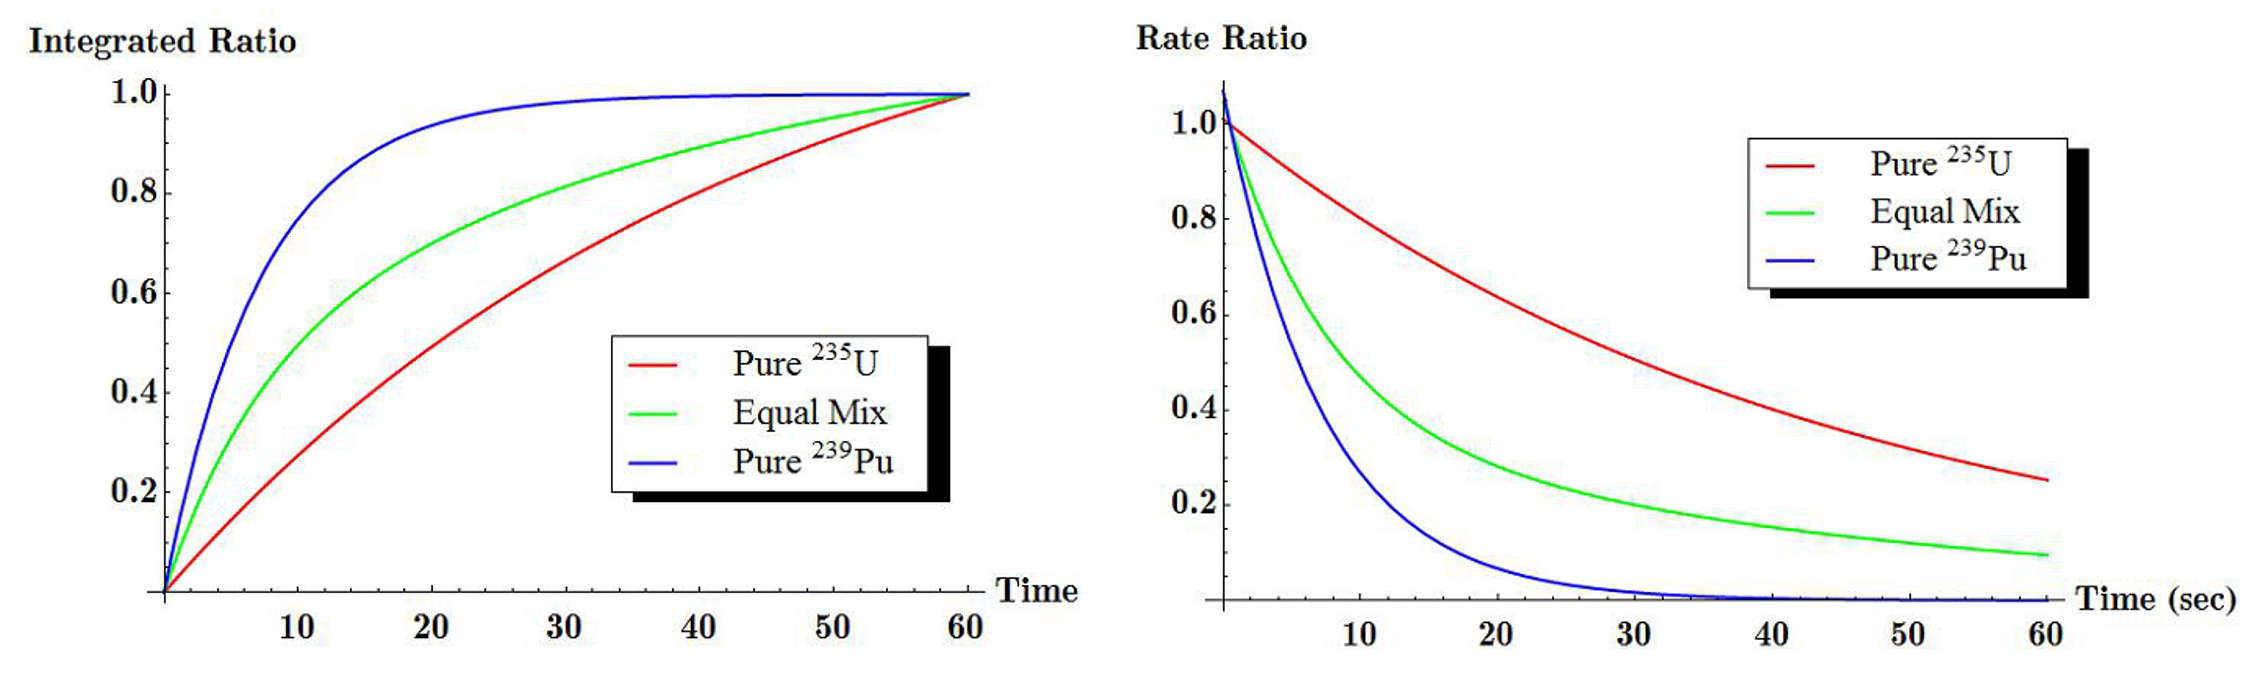 Temporal Gamma-ray Spectroscopy ratios